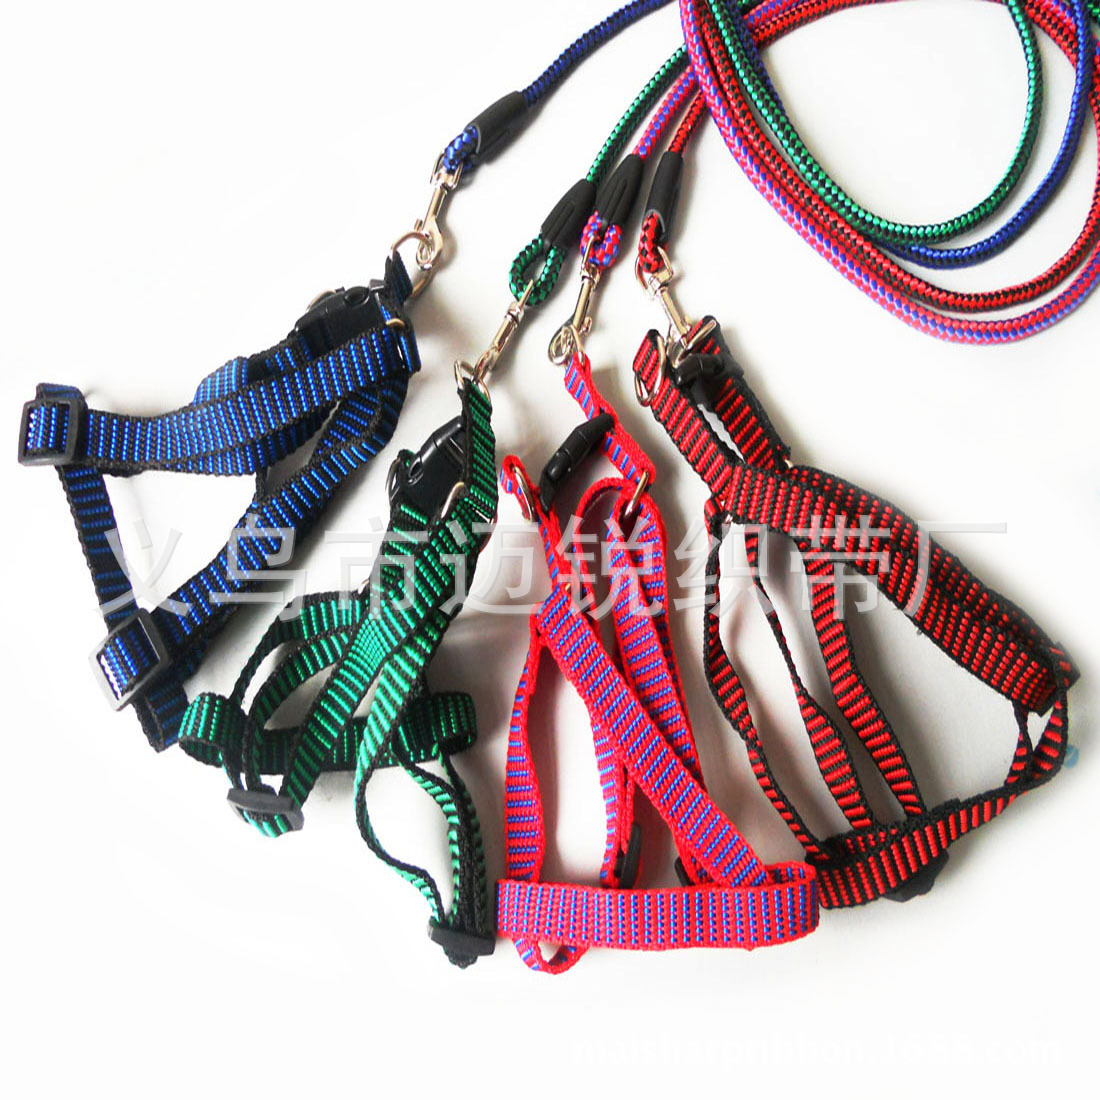 Pet Supplies 0.6 Cm Grid Round Rope Xiong Bei Tao Pet Traction Rope/with Dog Hand Holding Rope